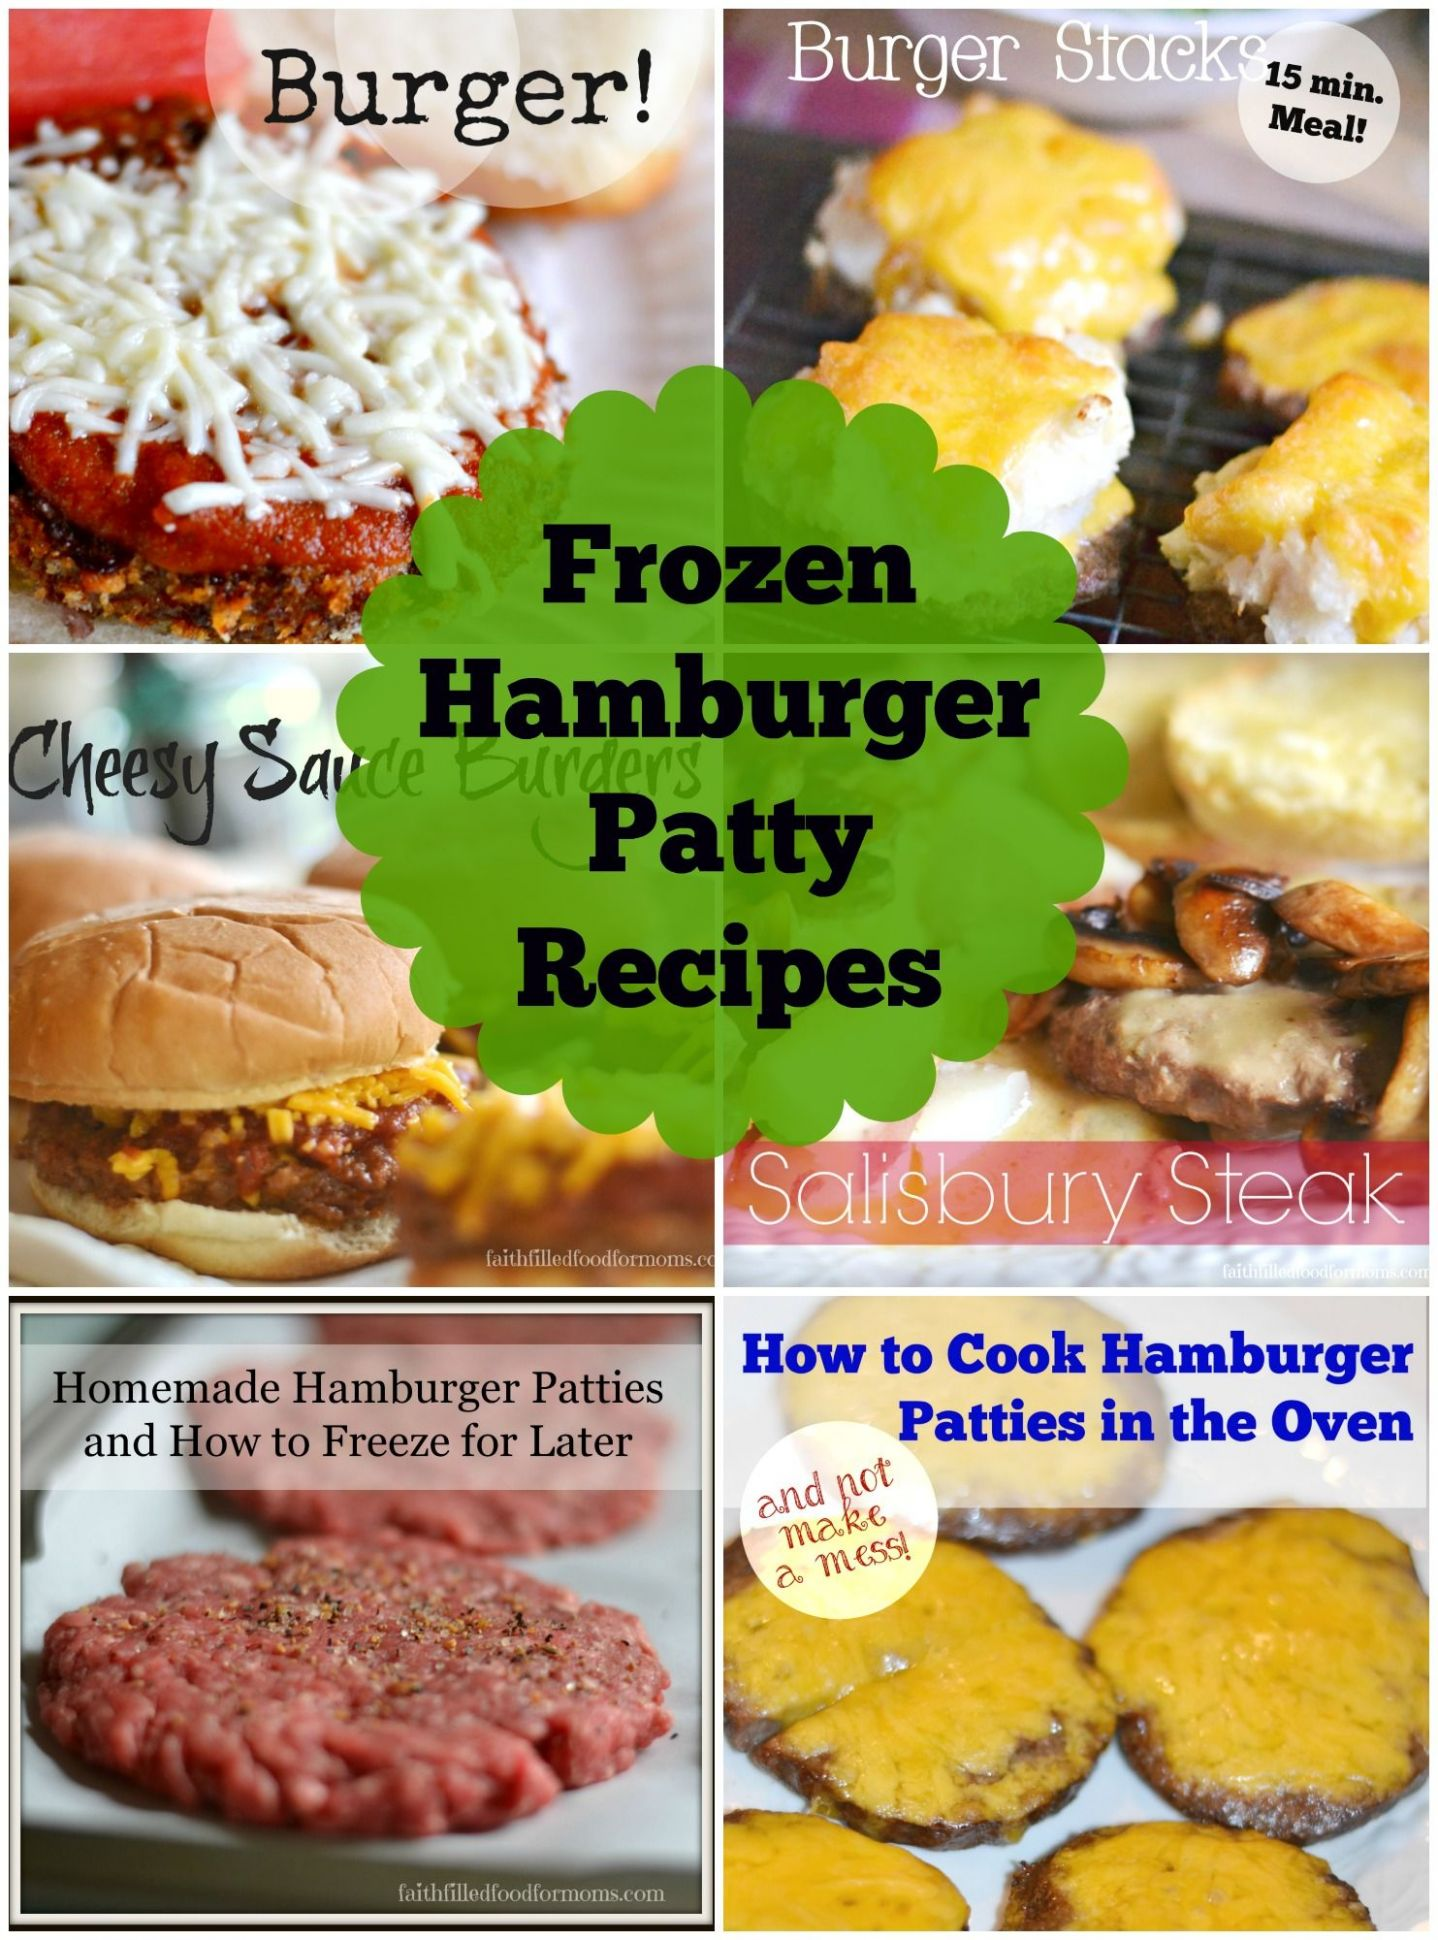 10 Easy Meals Using Frozen Hamburger Patties | Hamburger patties ...